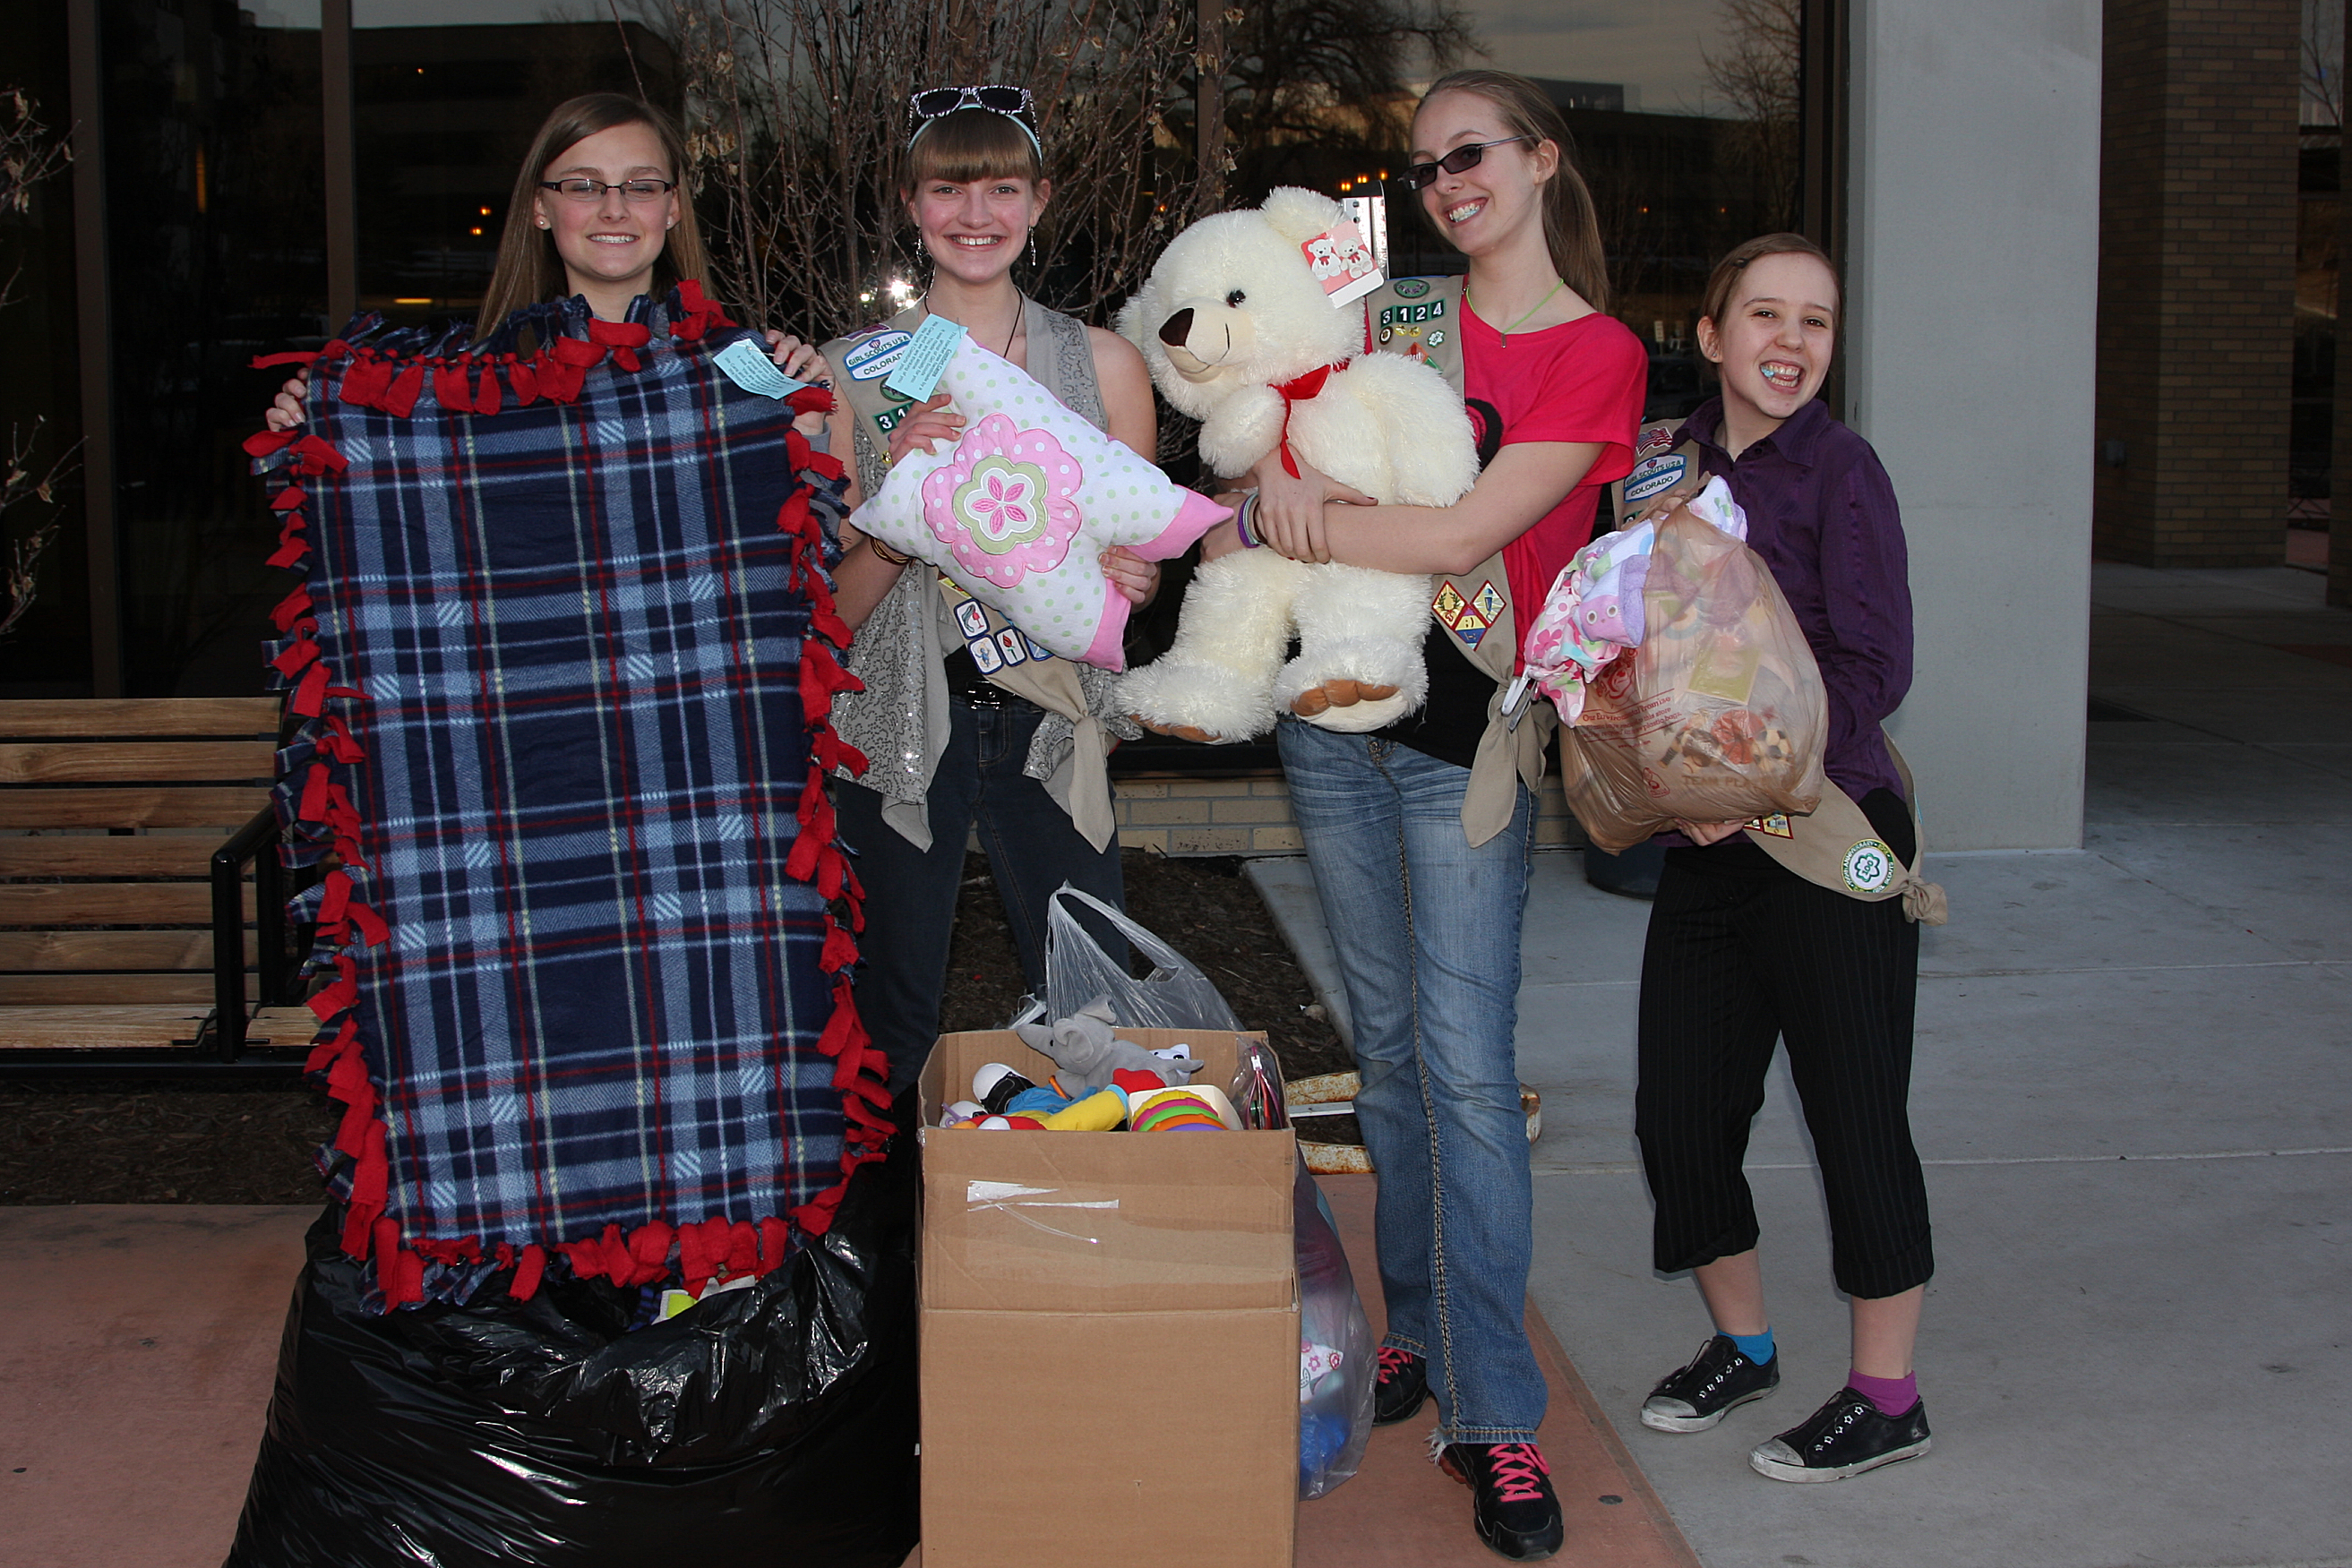 [21182]4315-luthern-girls-w-donations